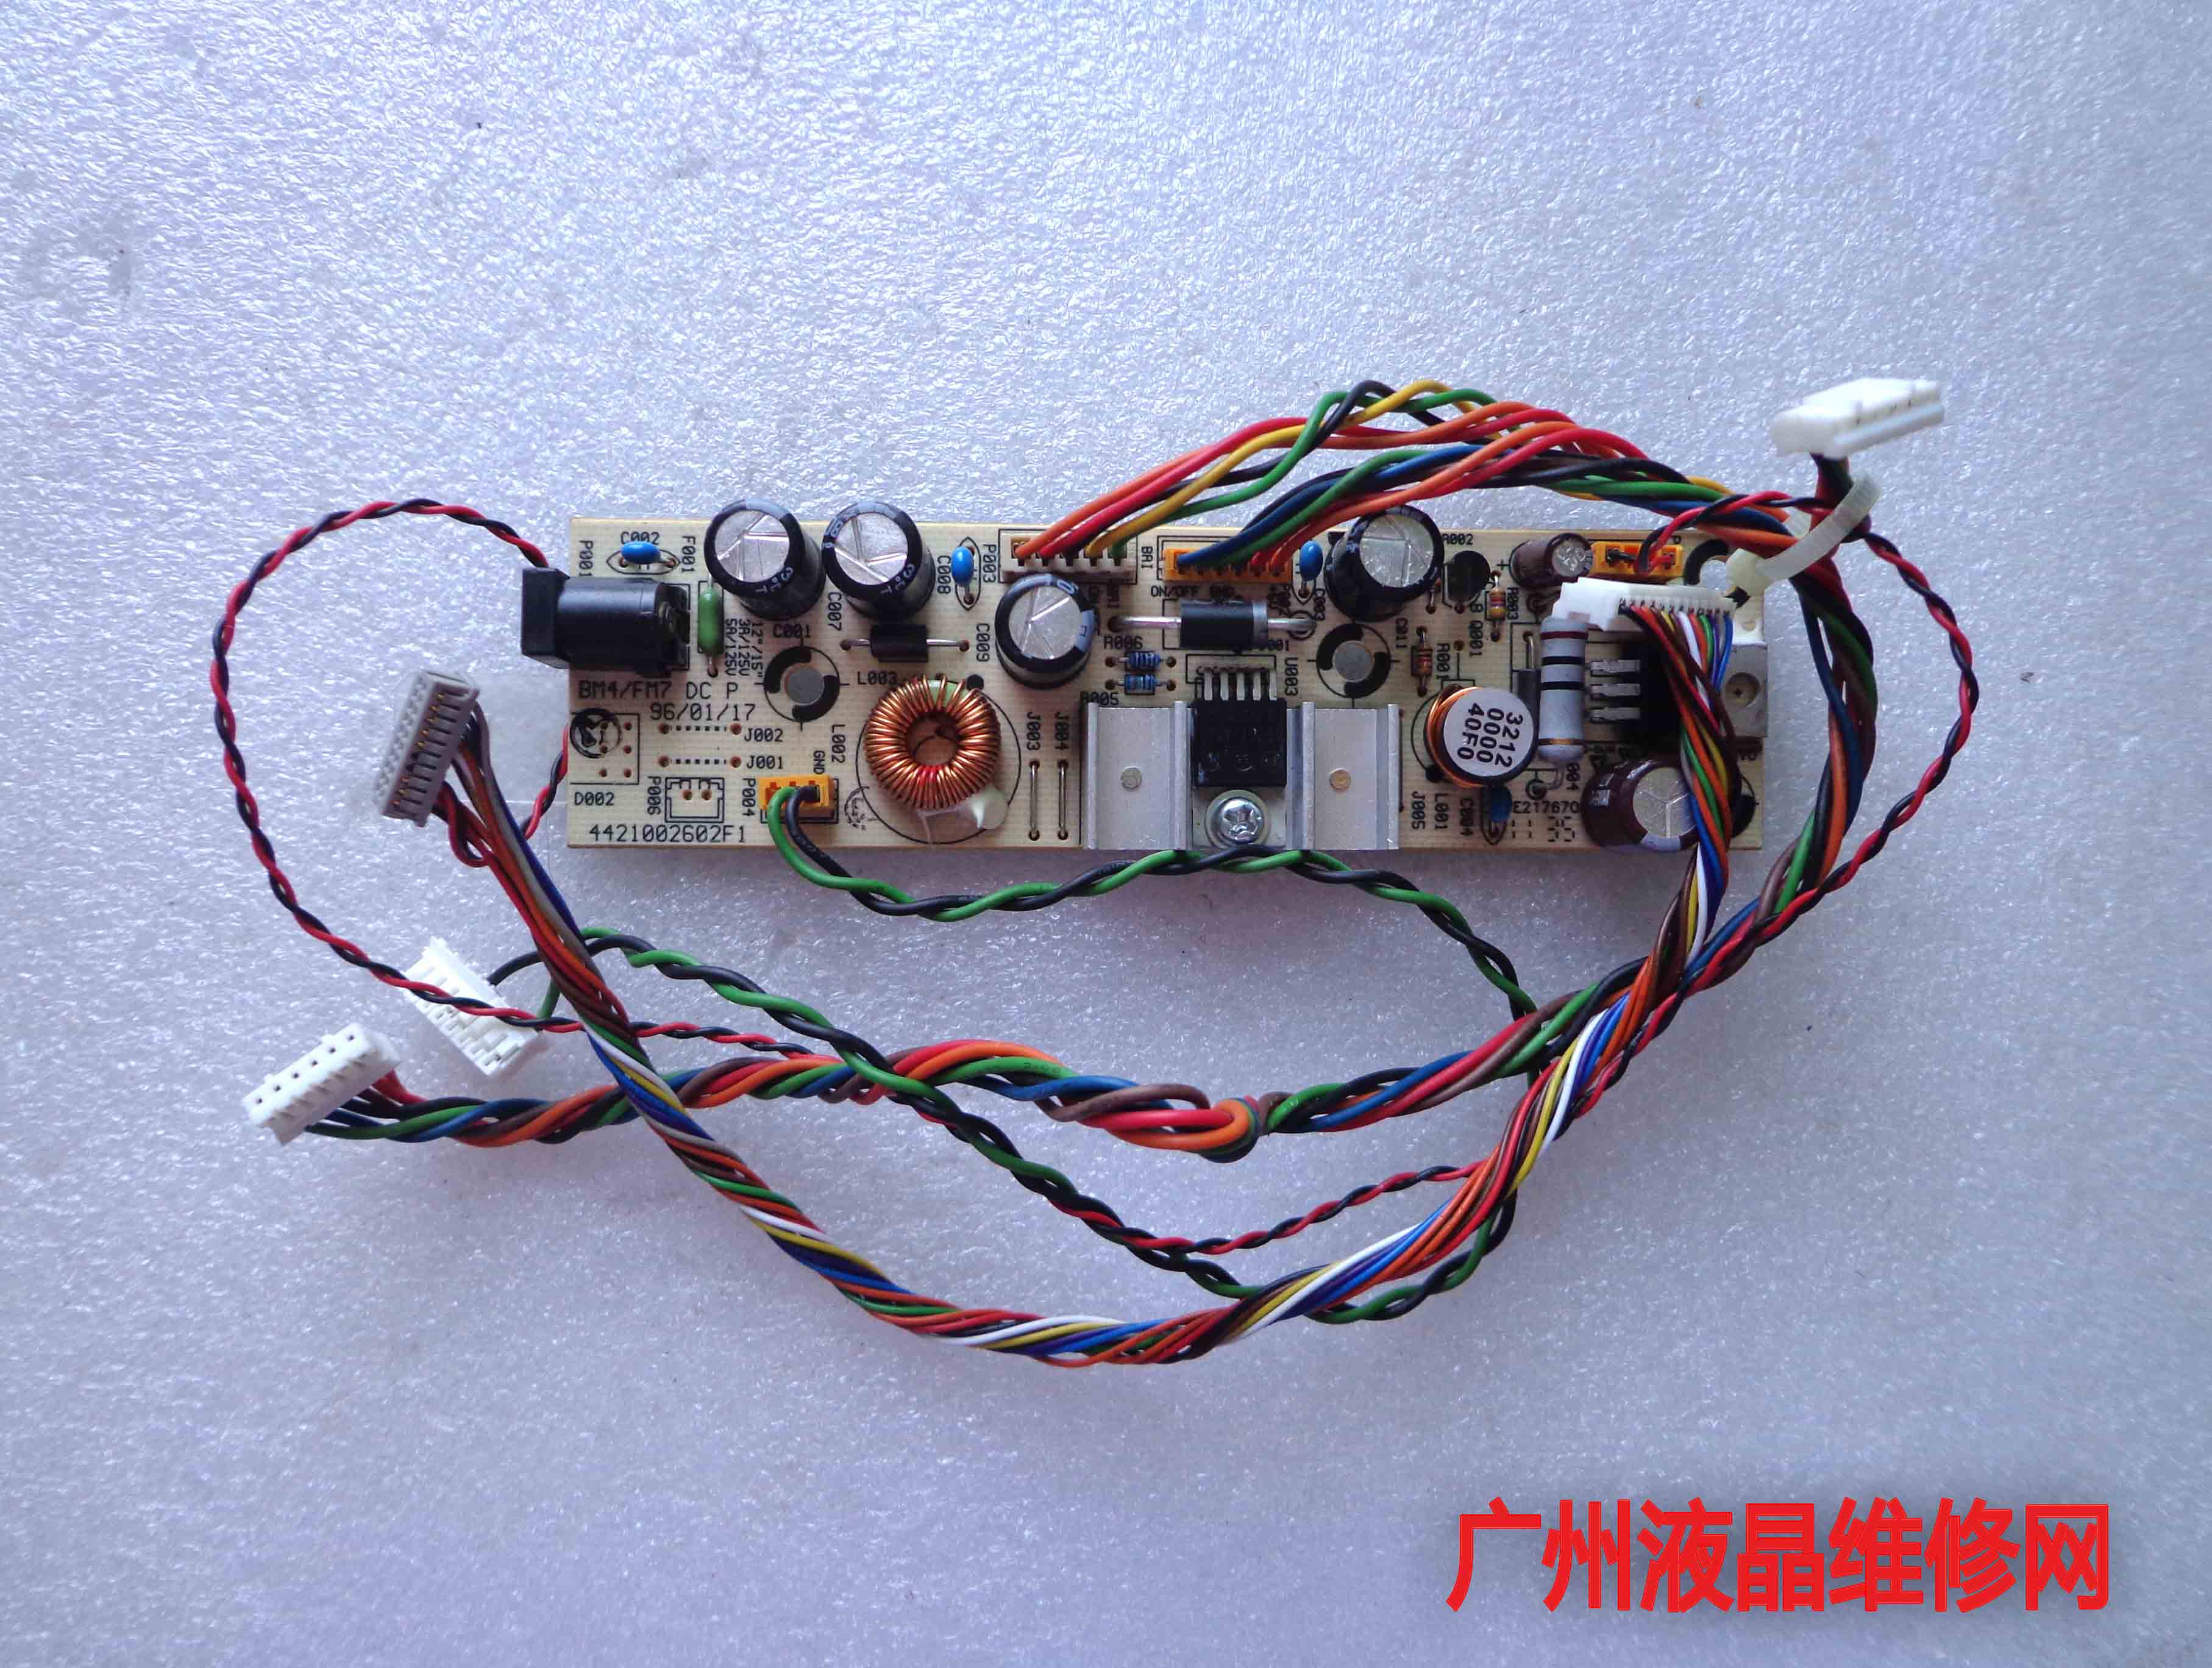 ET1739L-9CWA power supply board 17 inch plate with 4421002602F1